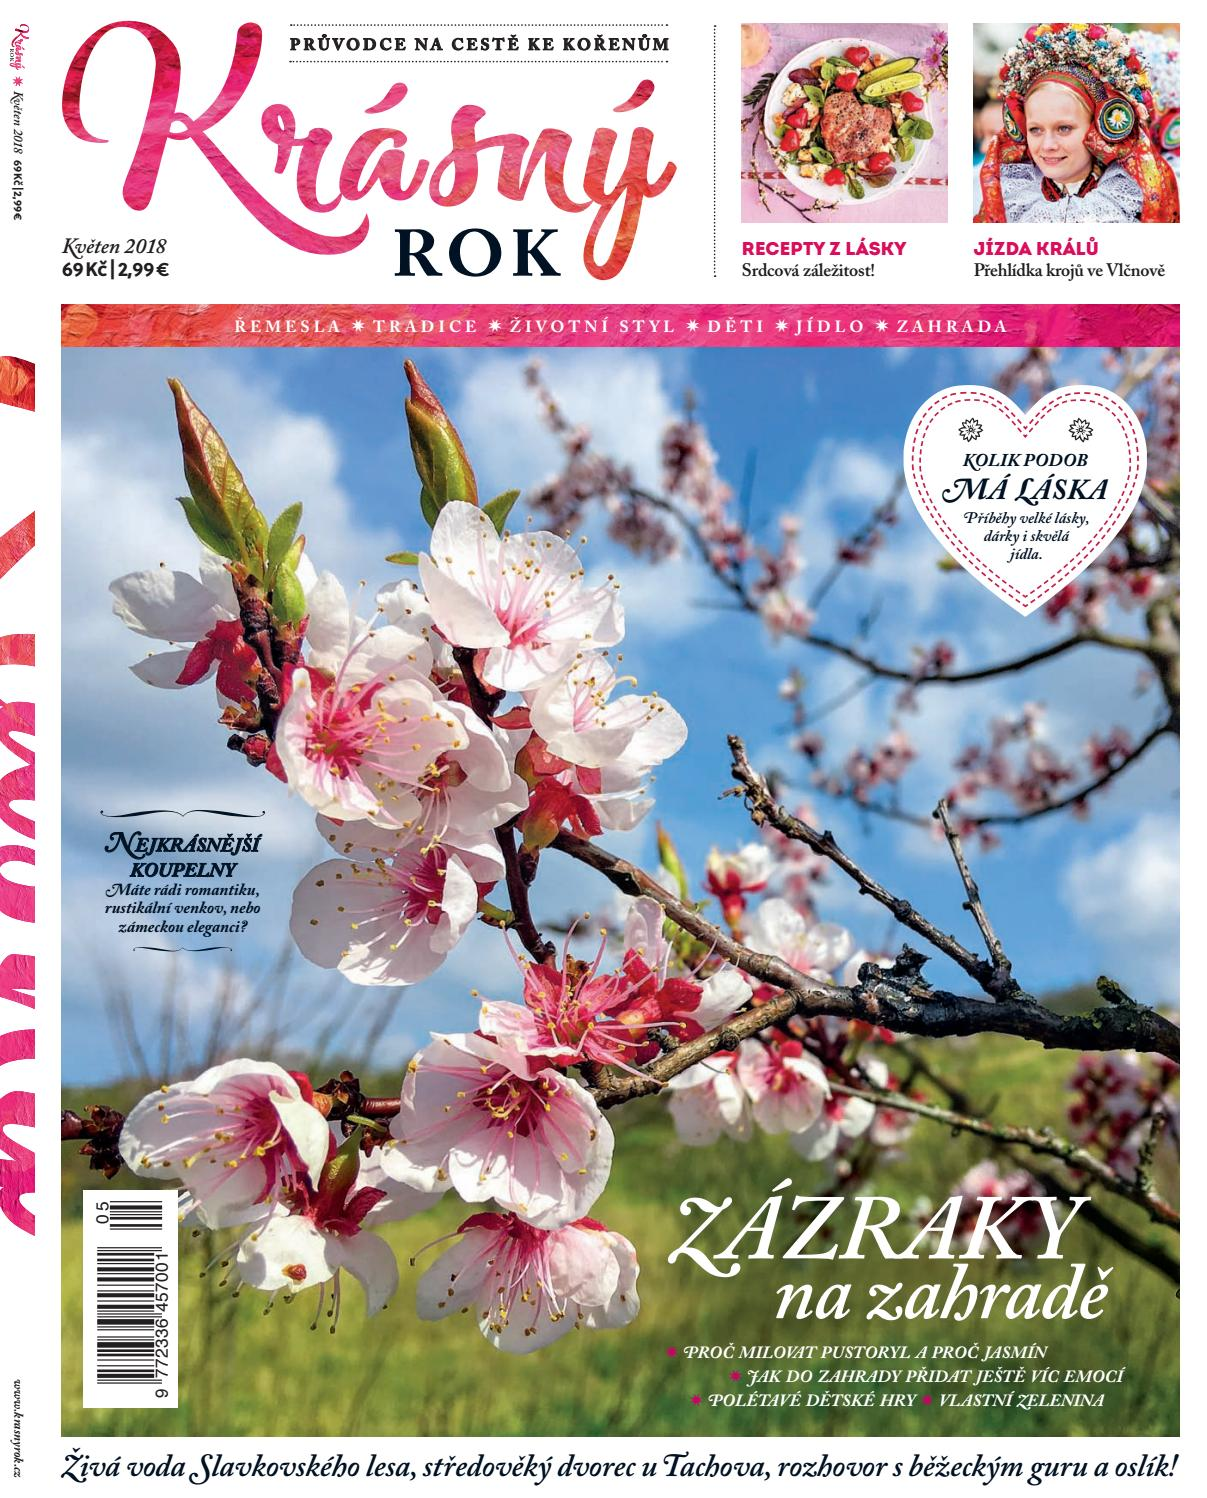 Krasný rok 05 2018 by Deco Media - issuu 2e0ec90712